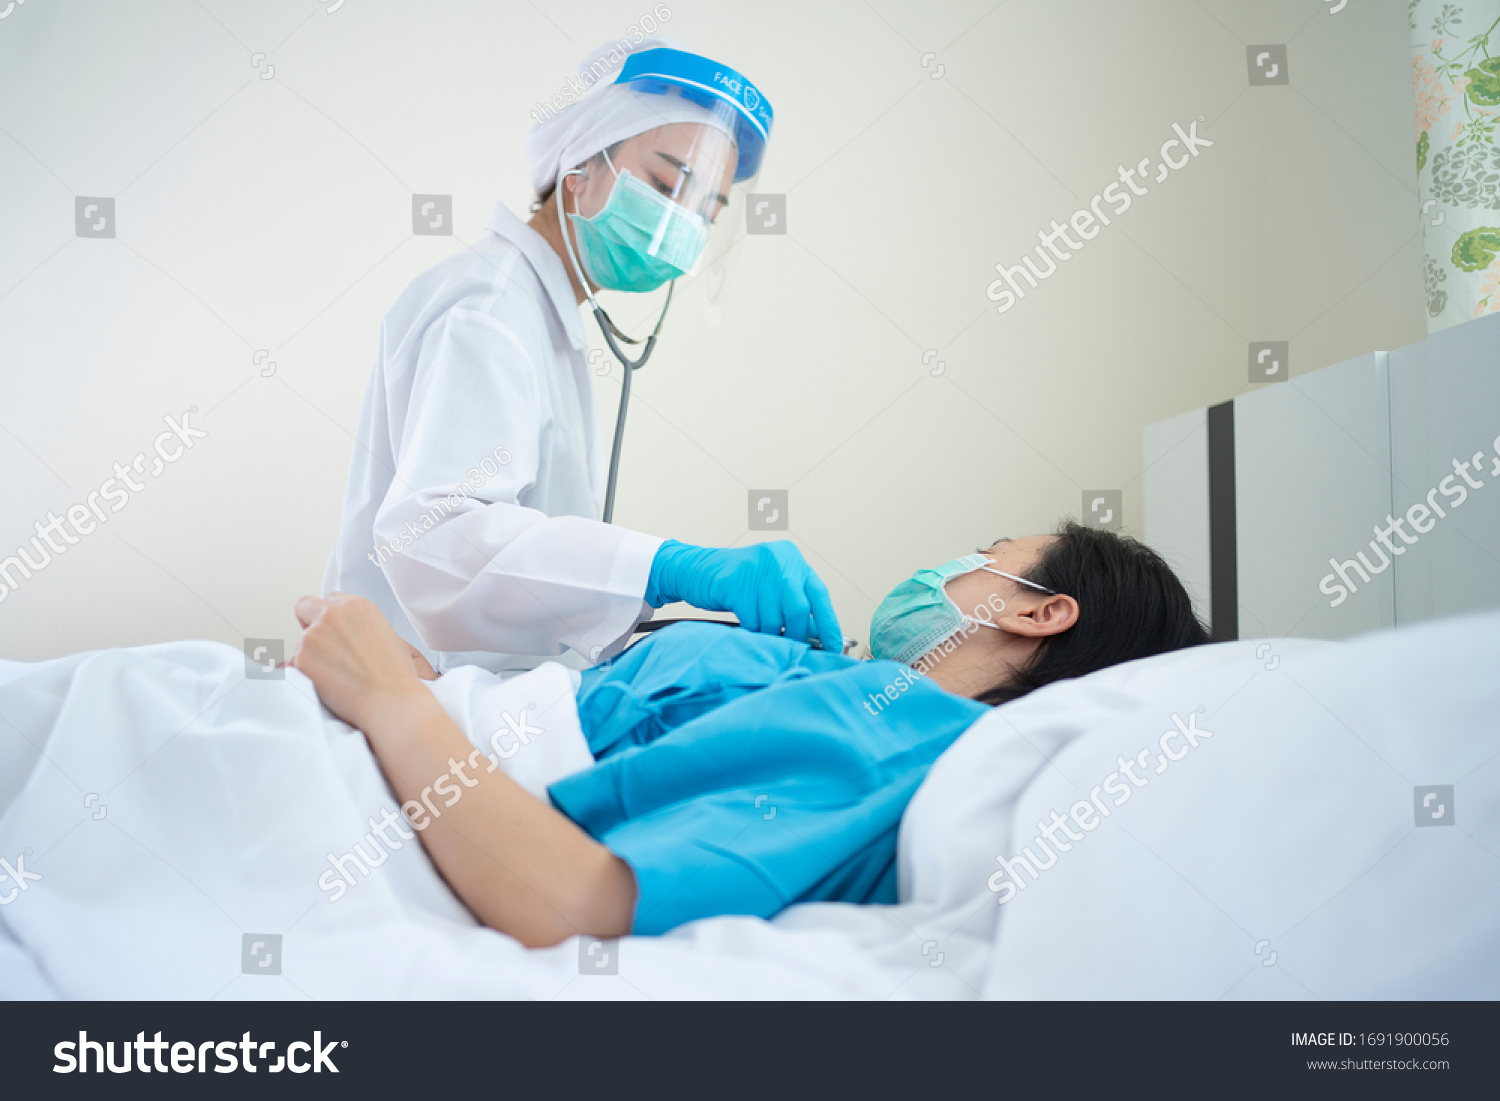 Doctor wearing PPE suit and Surgical mask and Checking infected patient in quarantine room Covid-19 (Coronavirus)Coronavirus outbreak or Covid-19, Concept of Covid-19 quarantine  #1691900056